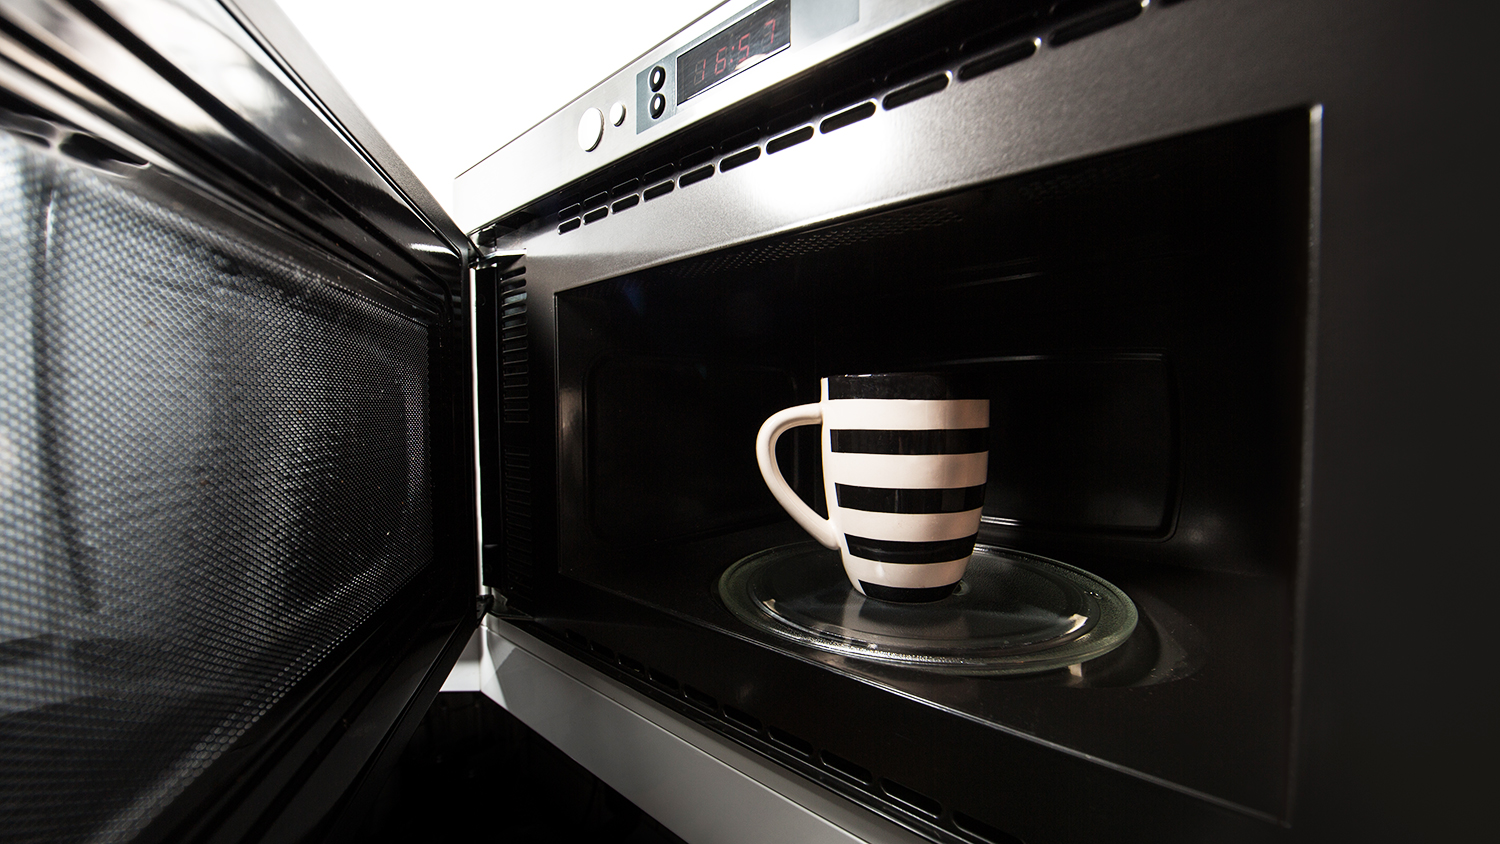 warming tea in microwave